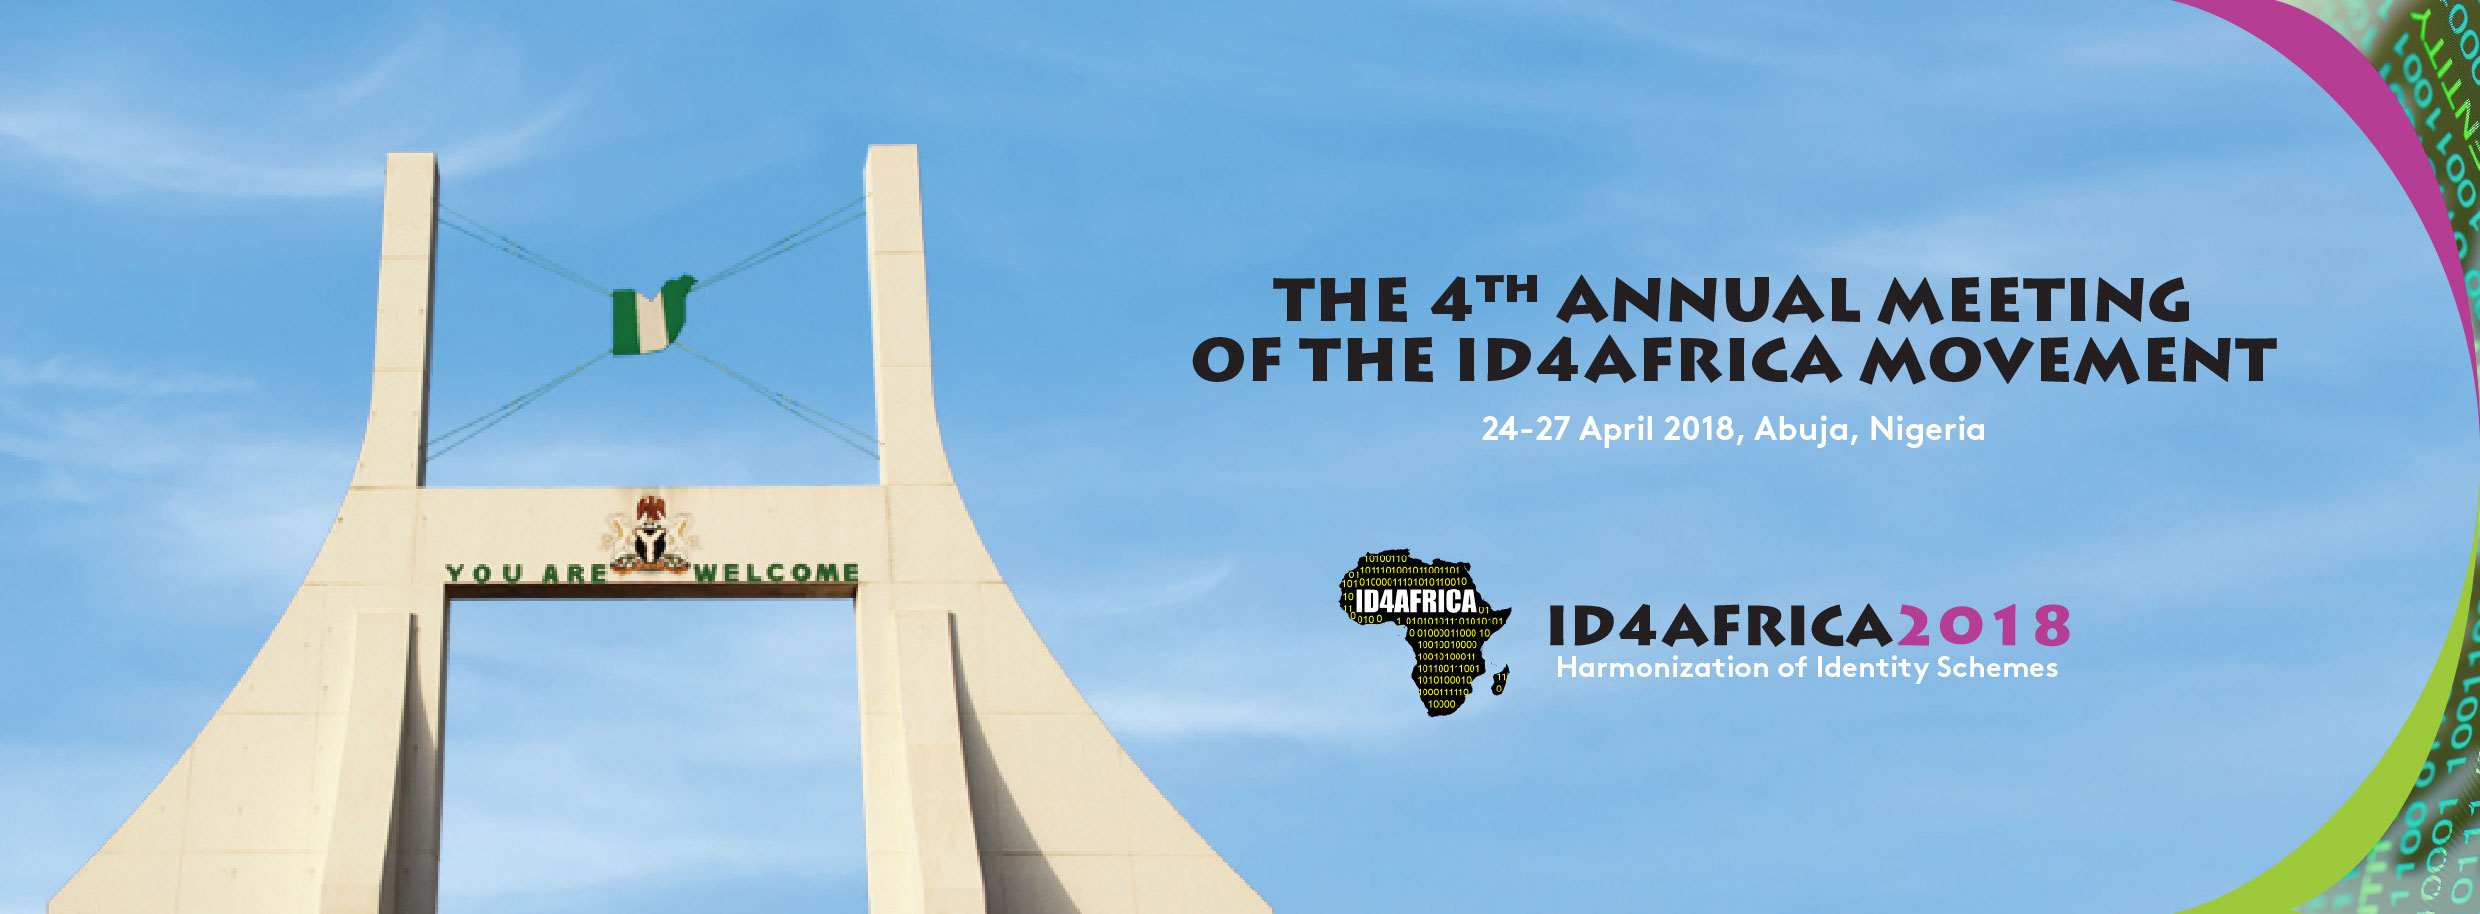 ID4Africa 2018 Nigeria Conference Identity